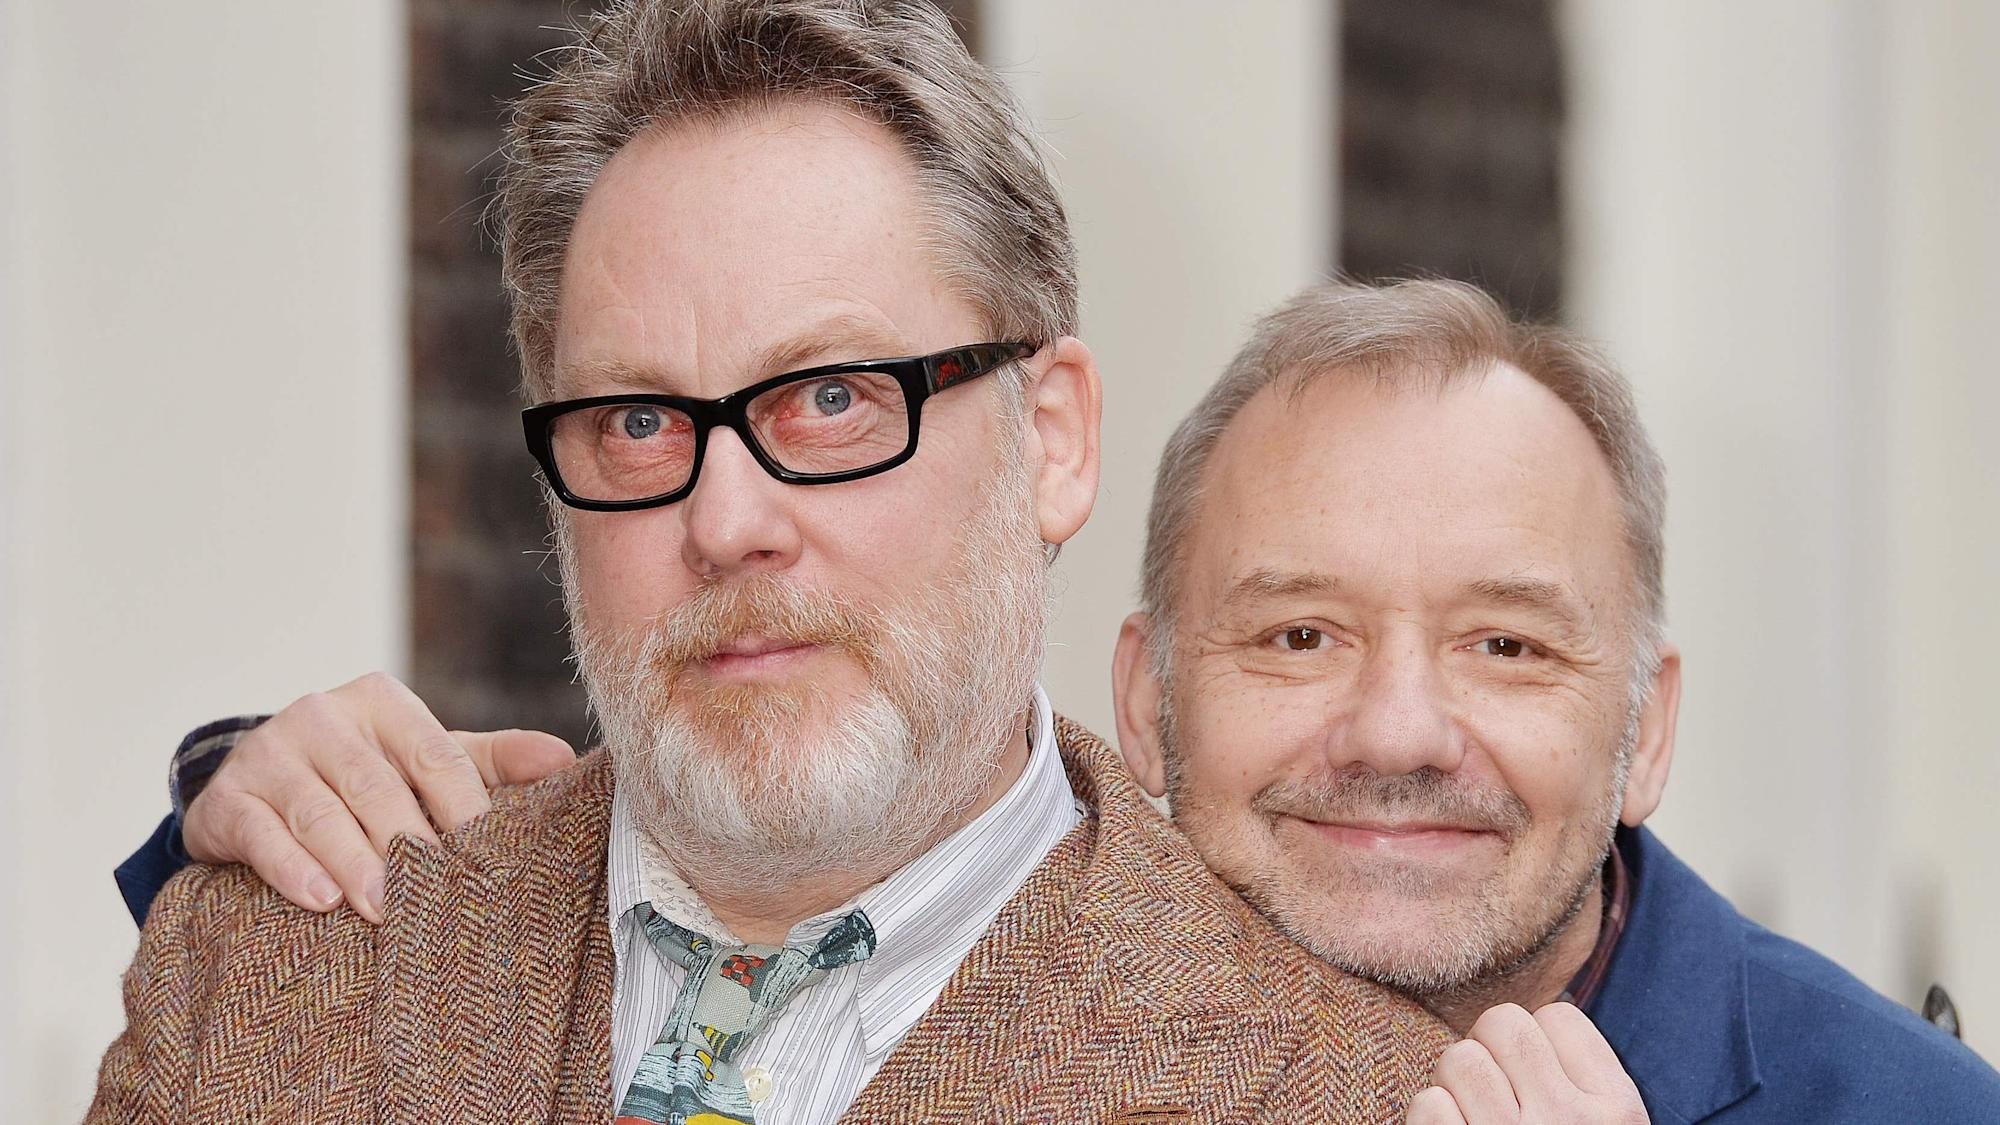 Vic Reeves and Bob Mortimer were threatened at gunpoint during California trip